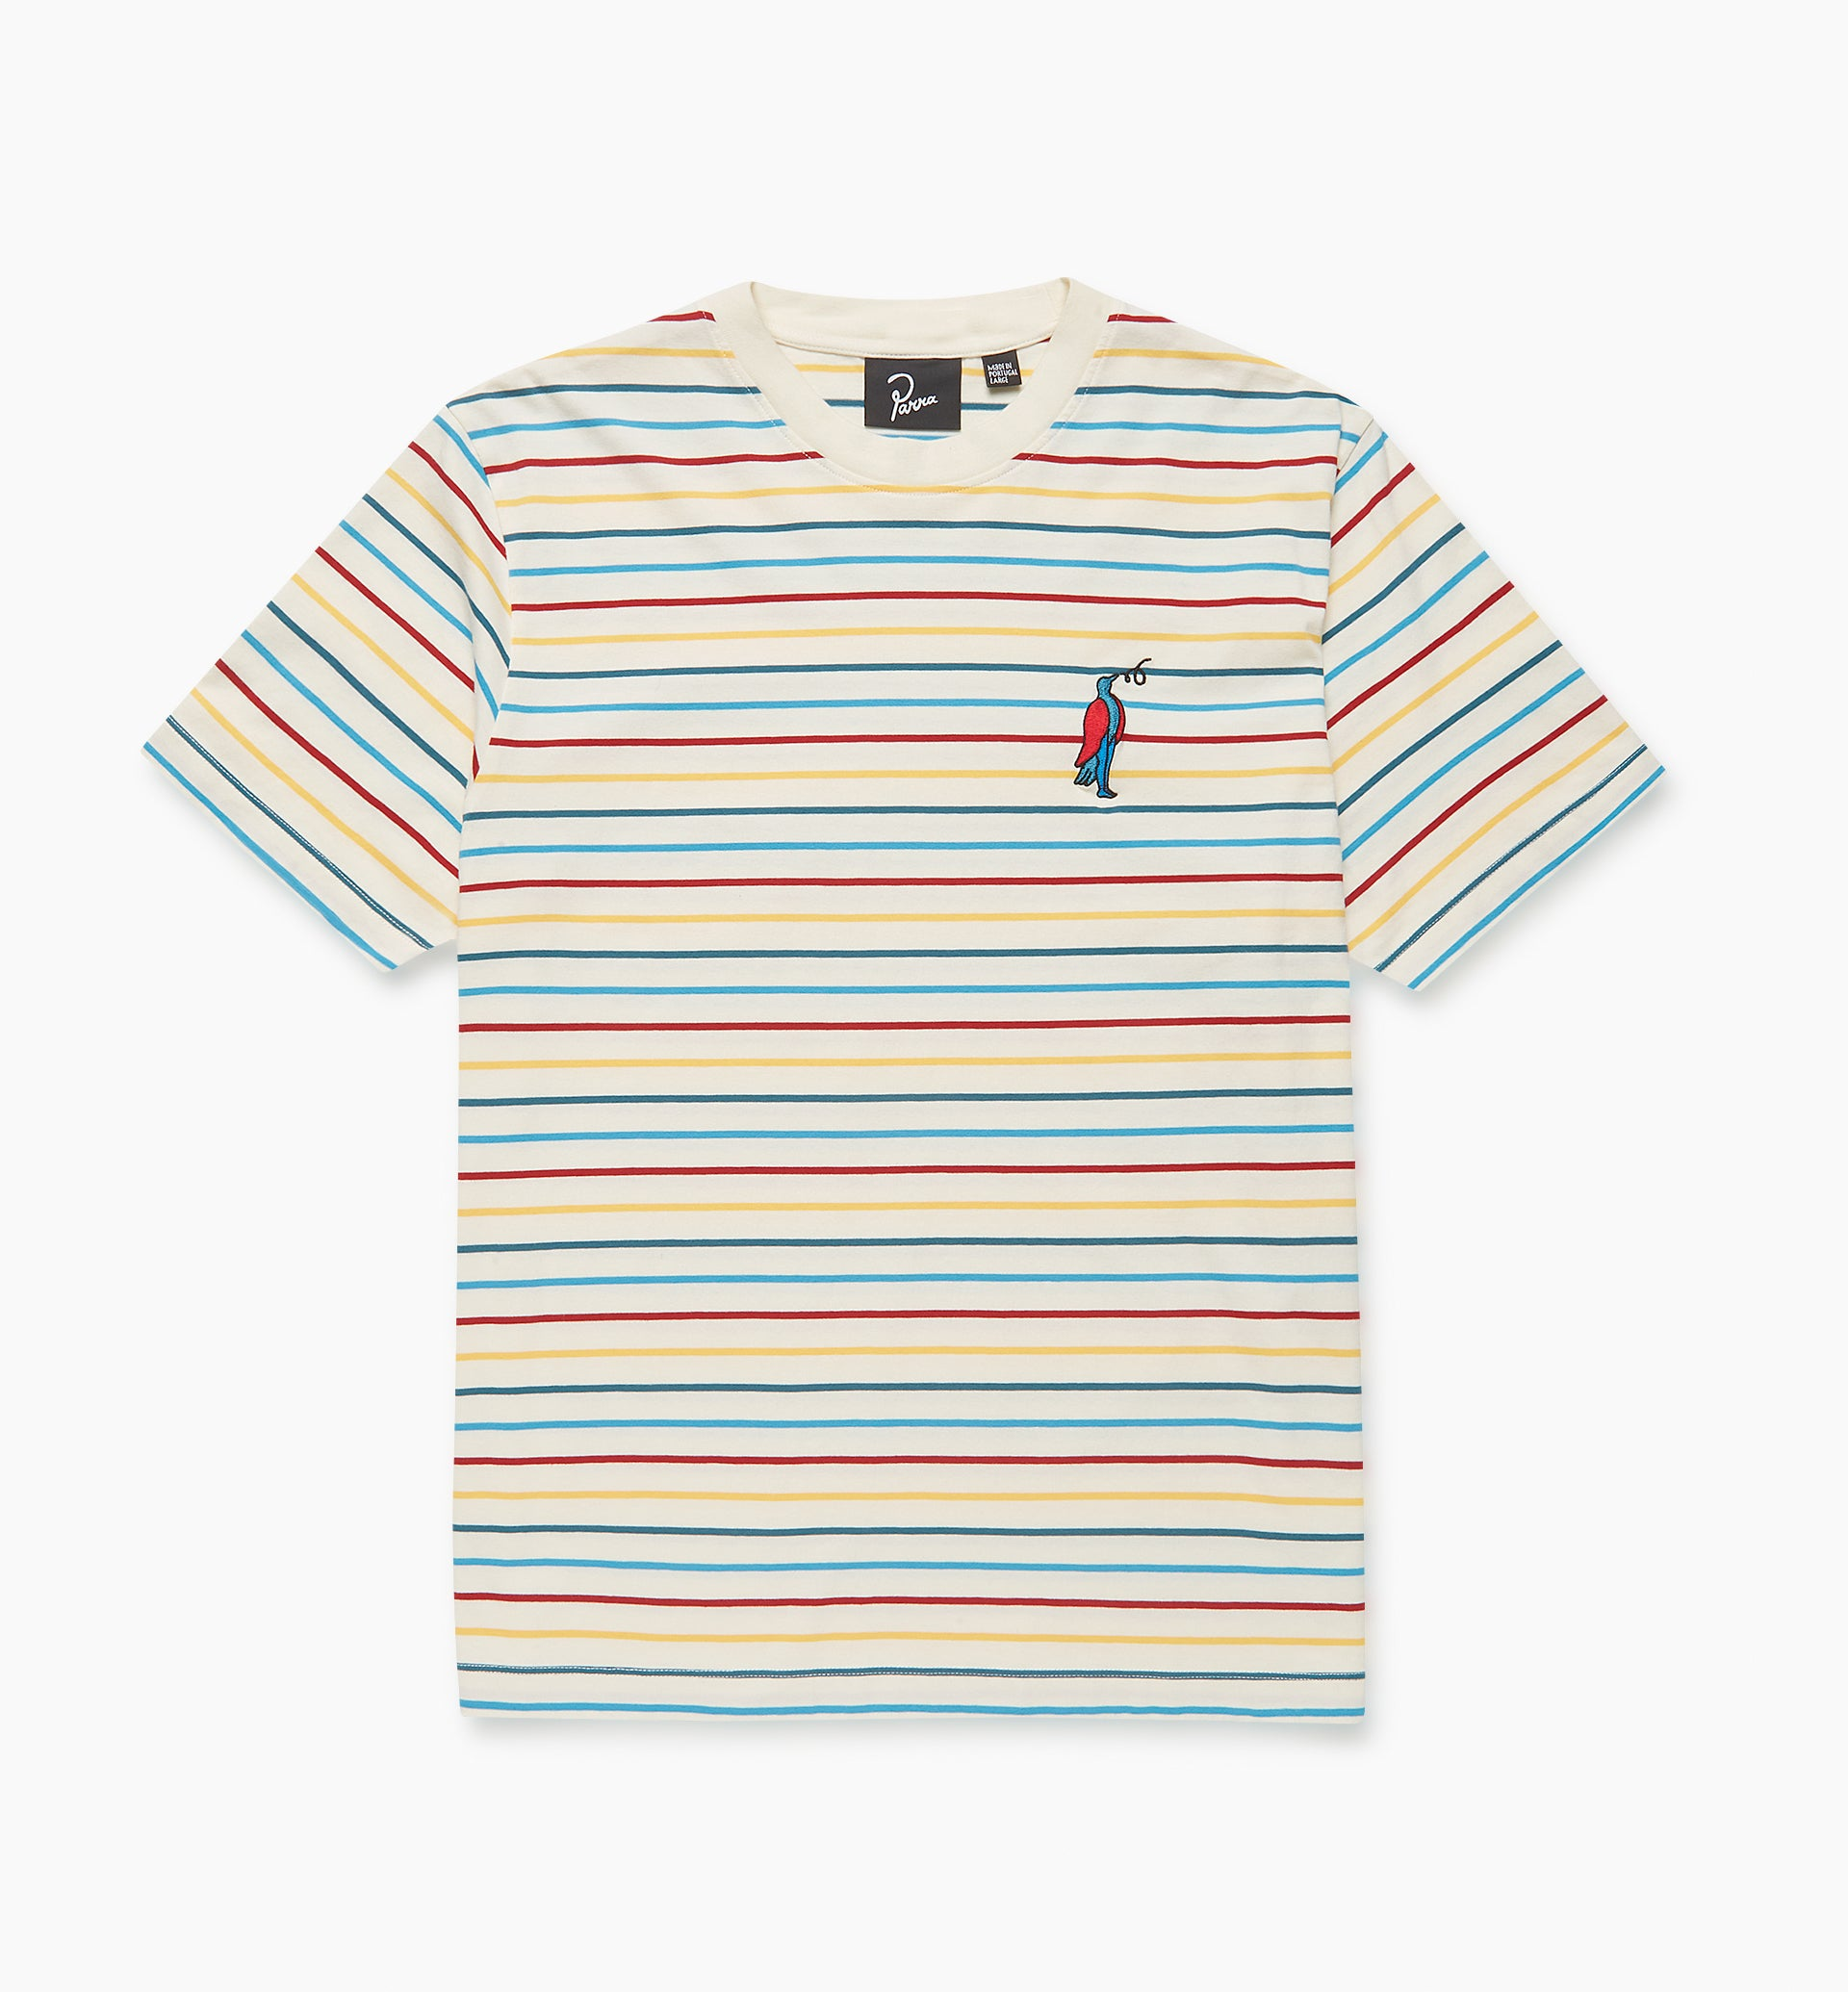 Parra - staring striped t-shirt